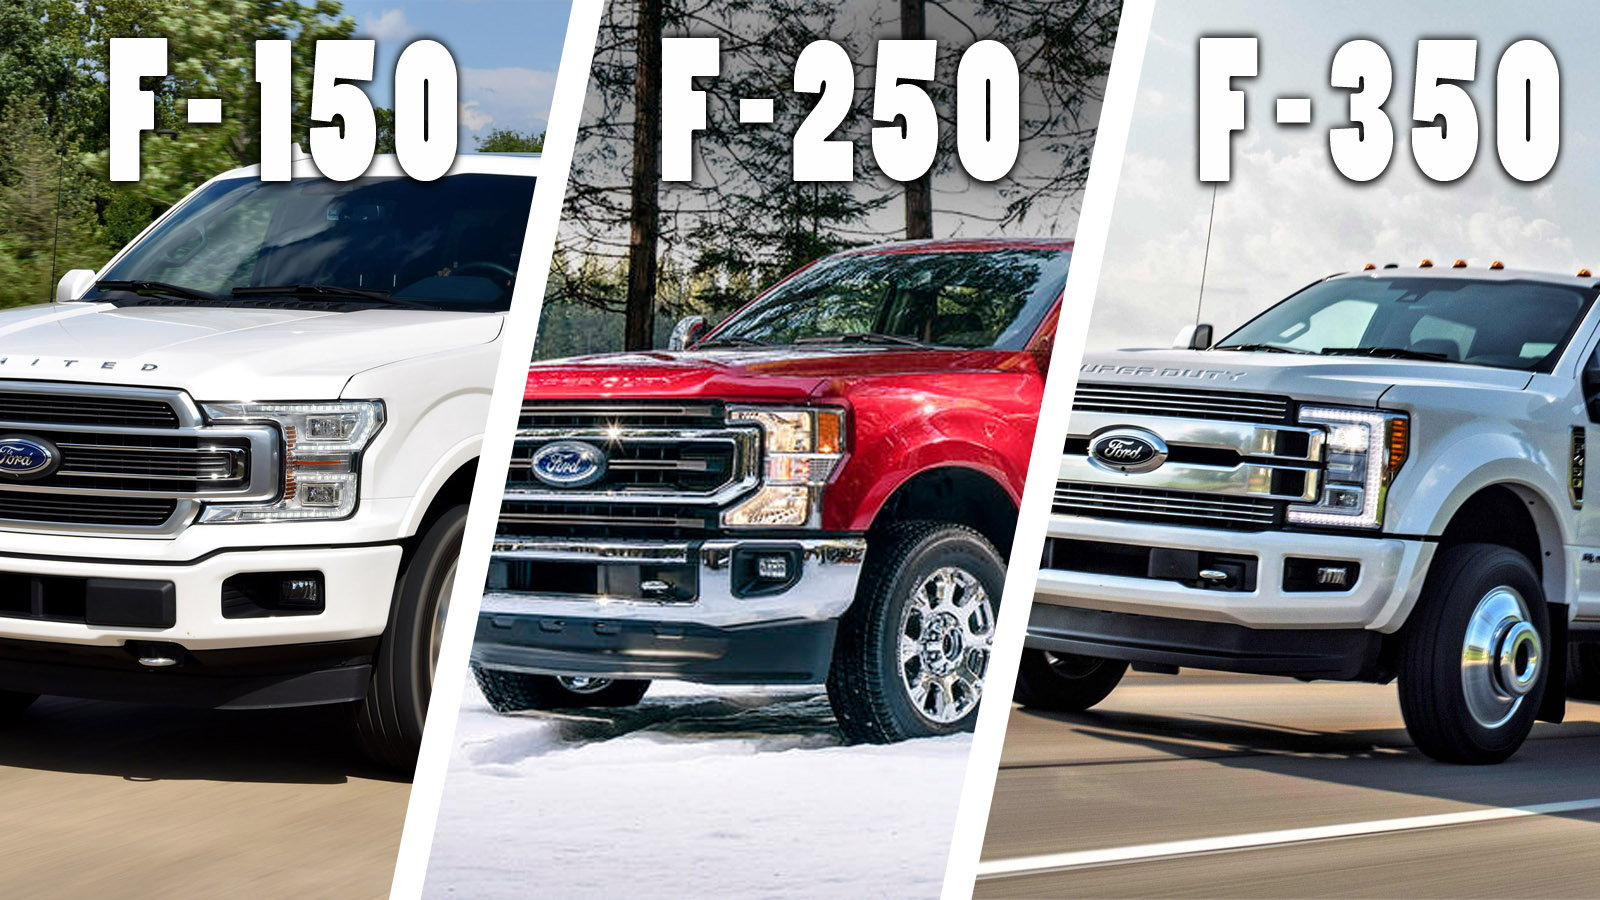 F150 Vs F250 >> F150 Vs F250 Vs F350 Ford Trucks